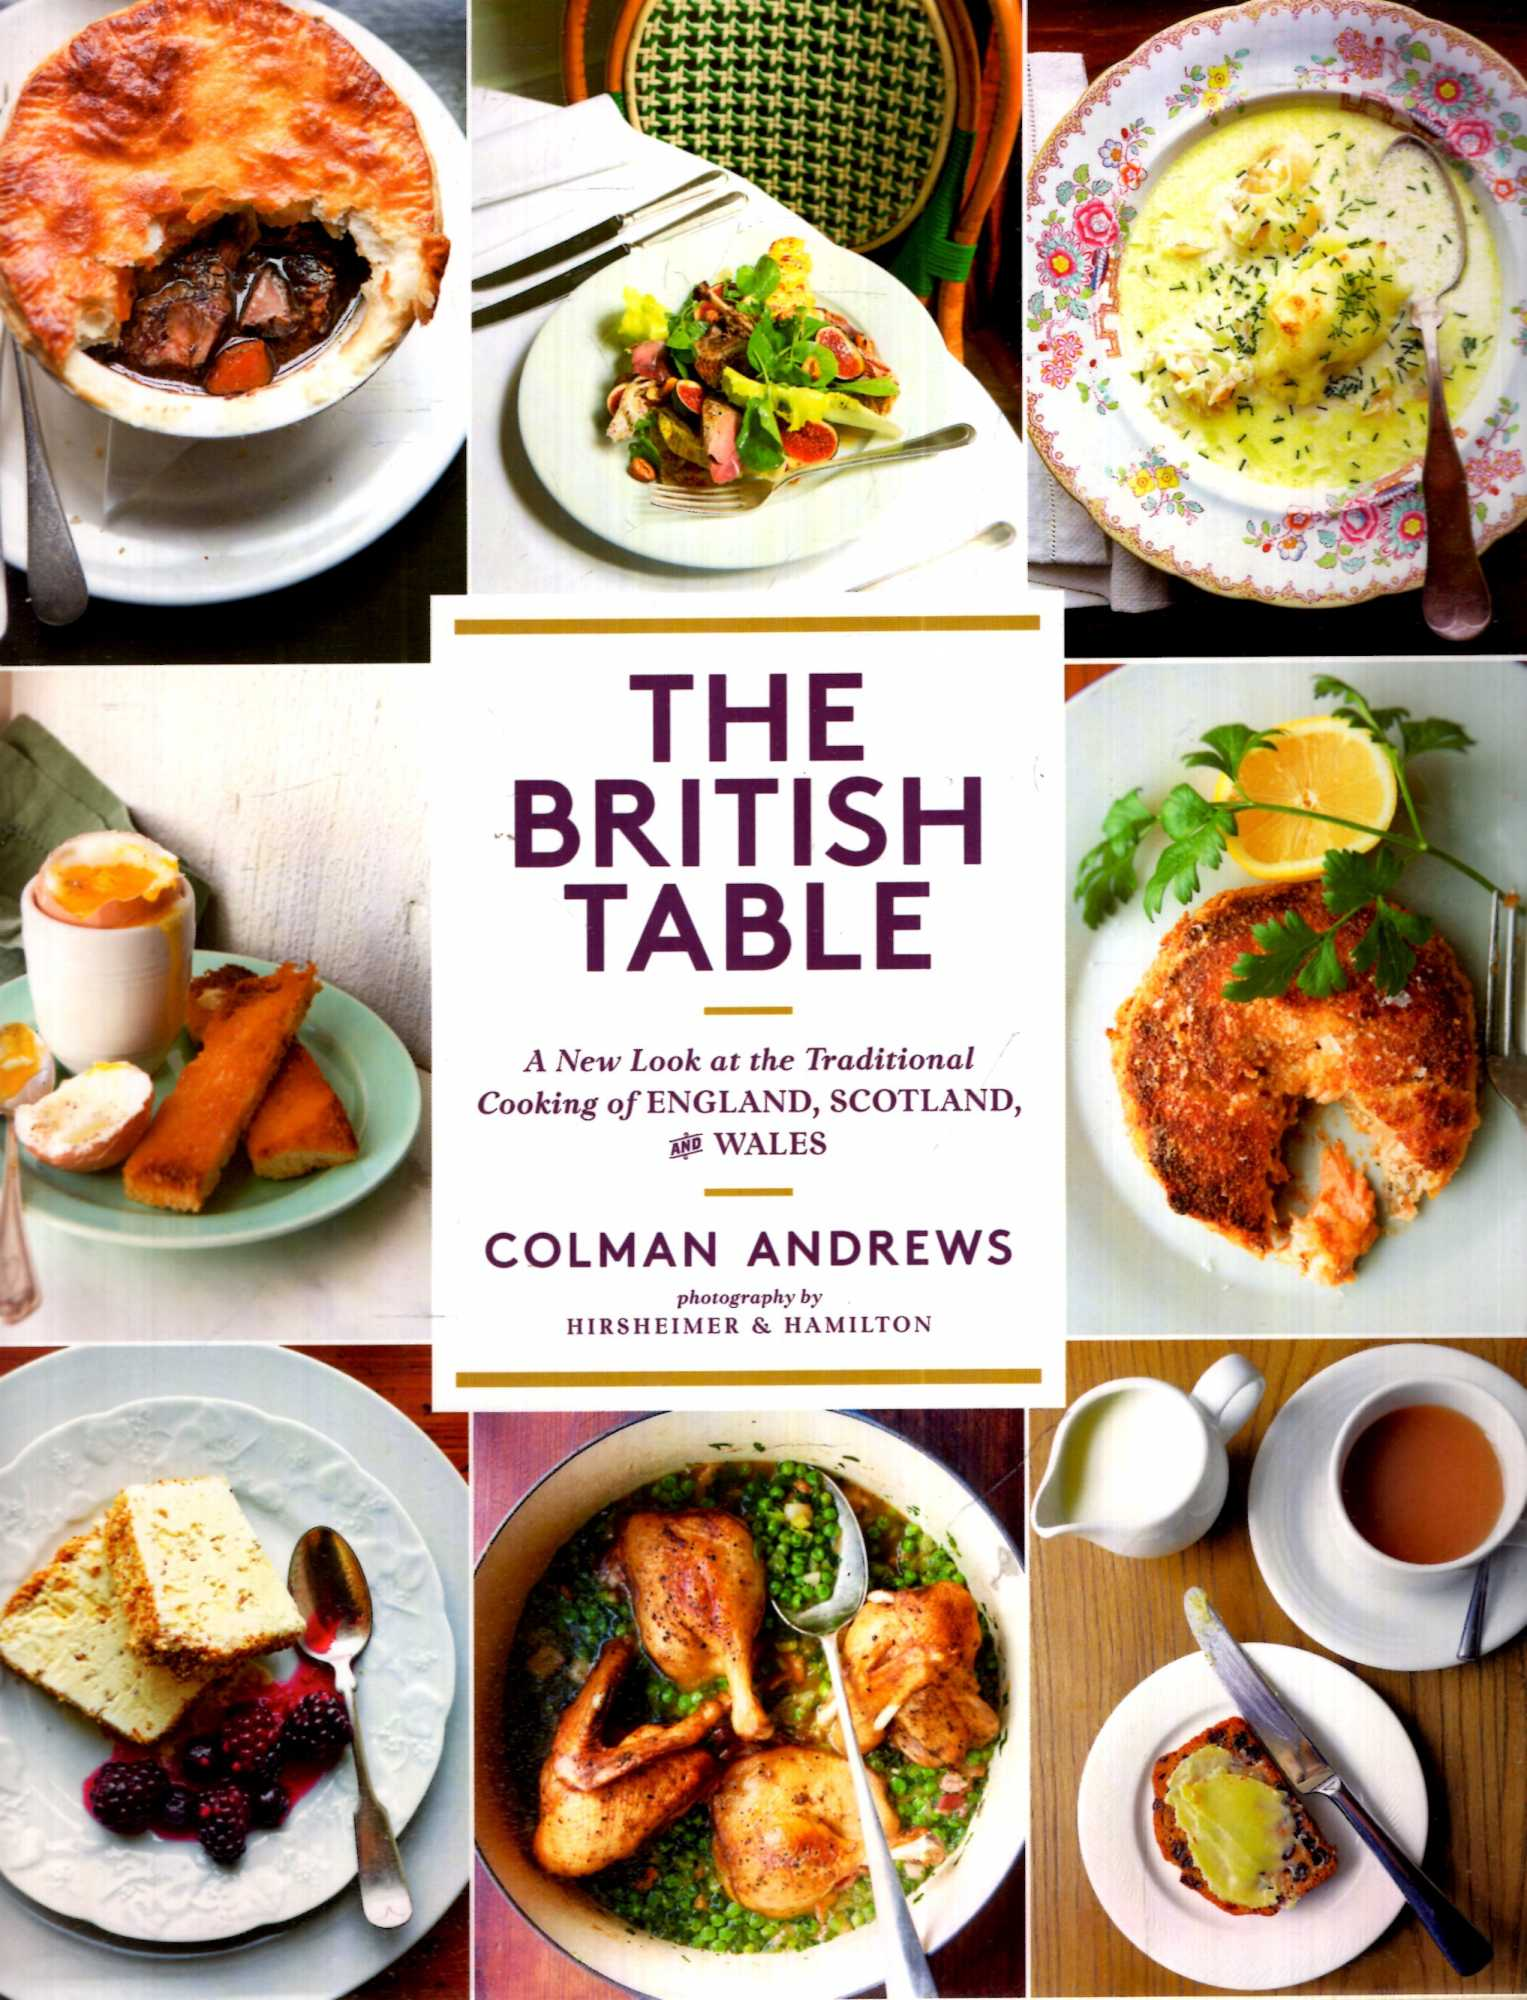 Image for The British Table: A New Look at the Traditional Cooking of England, Scotland, and Wales